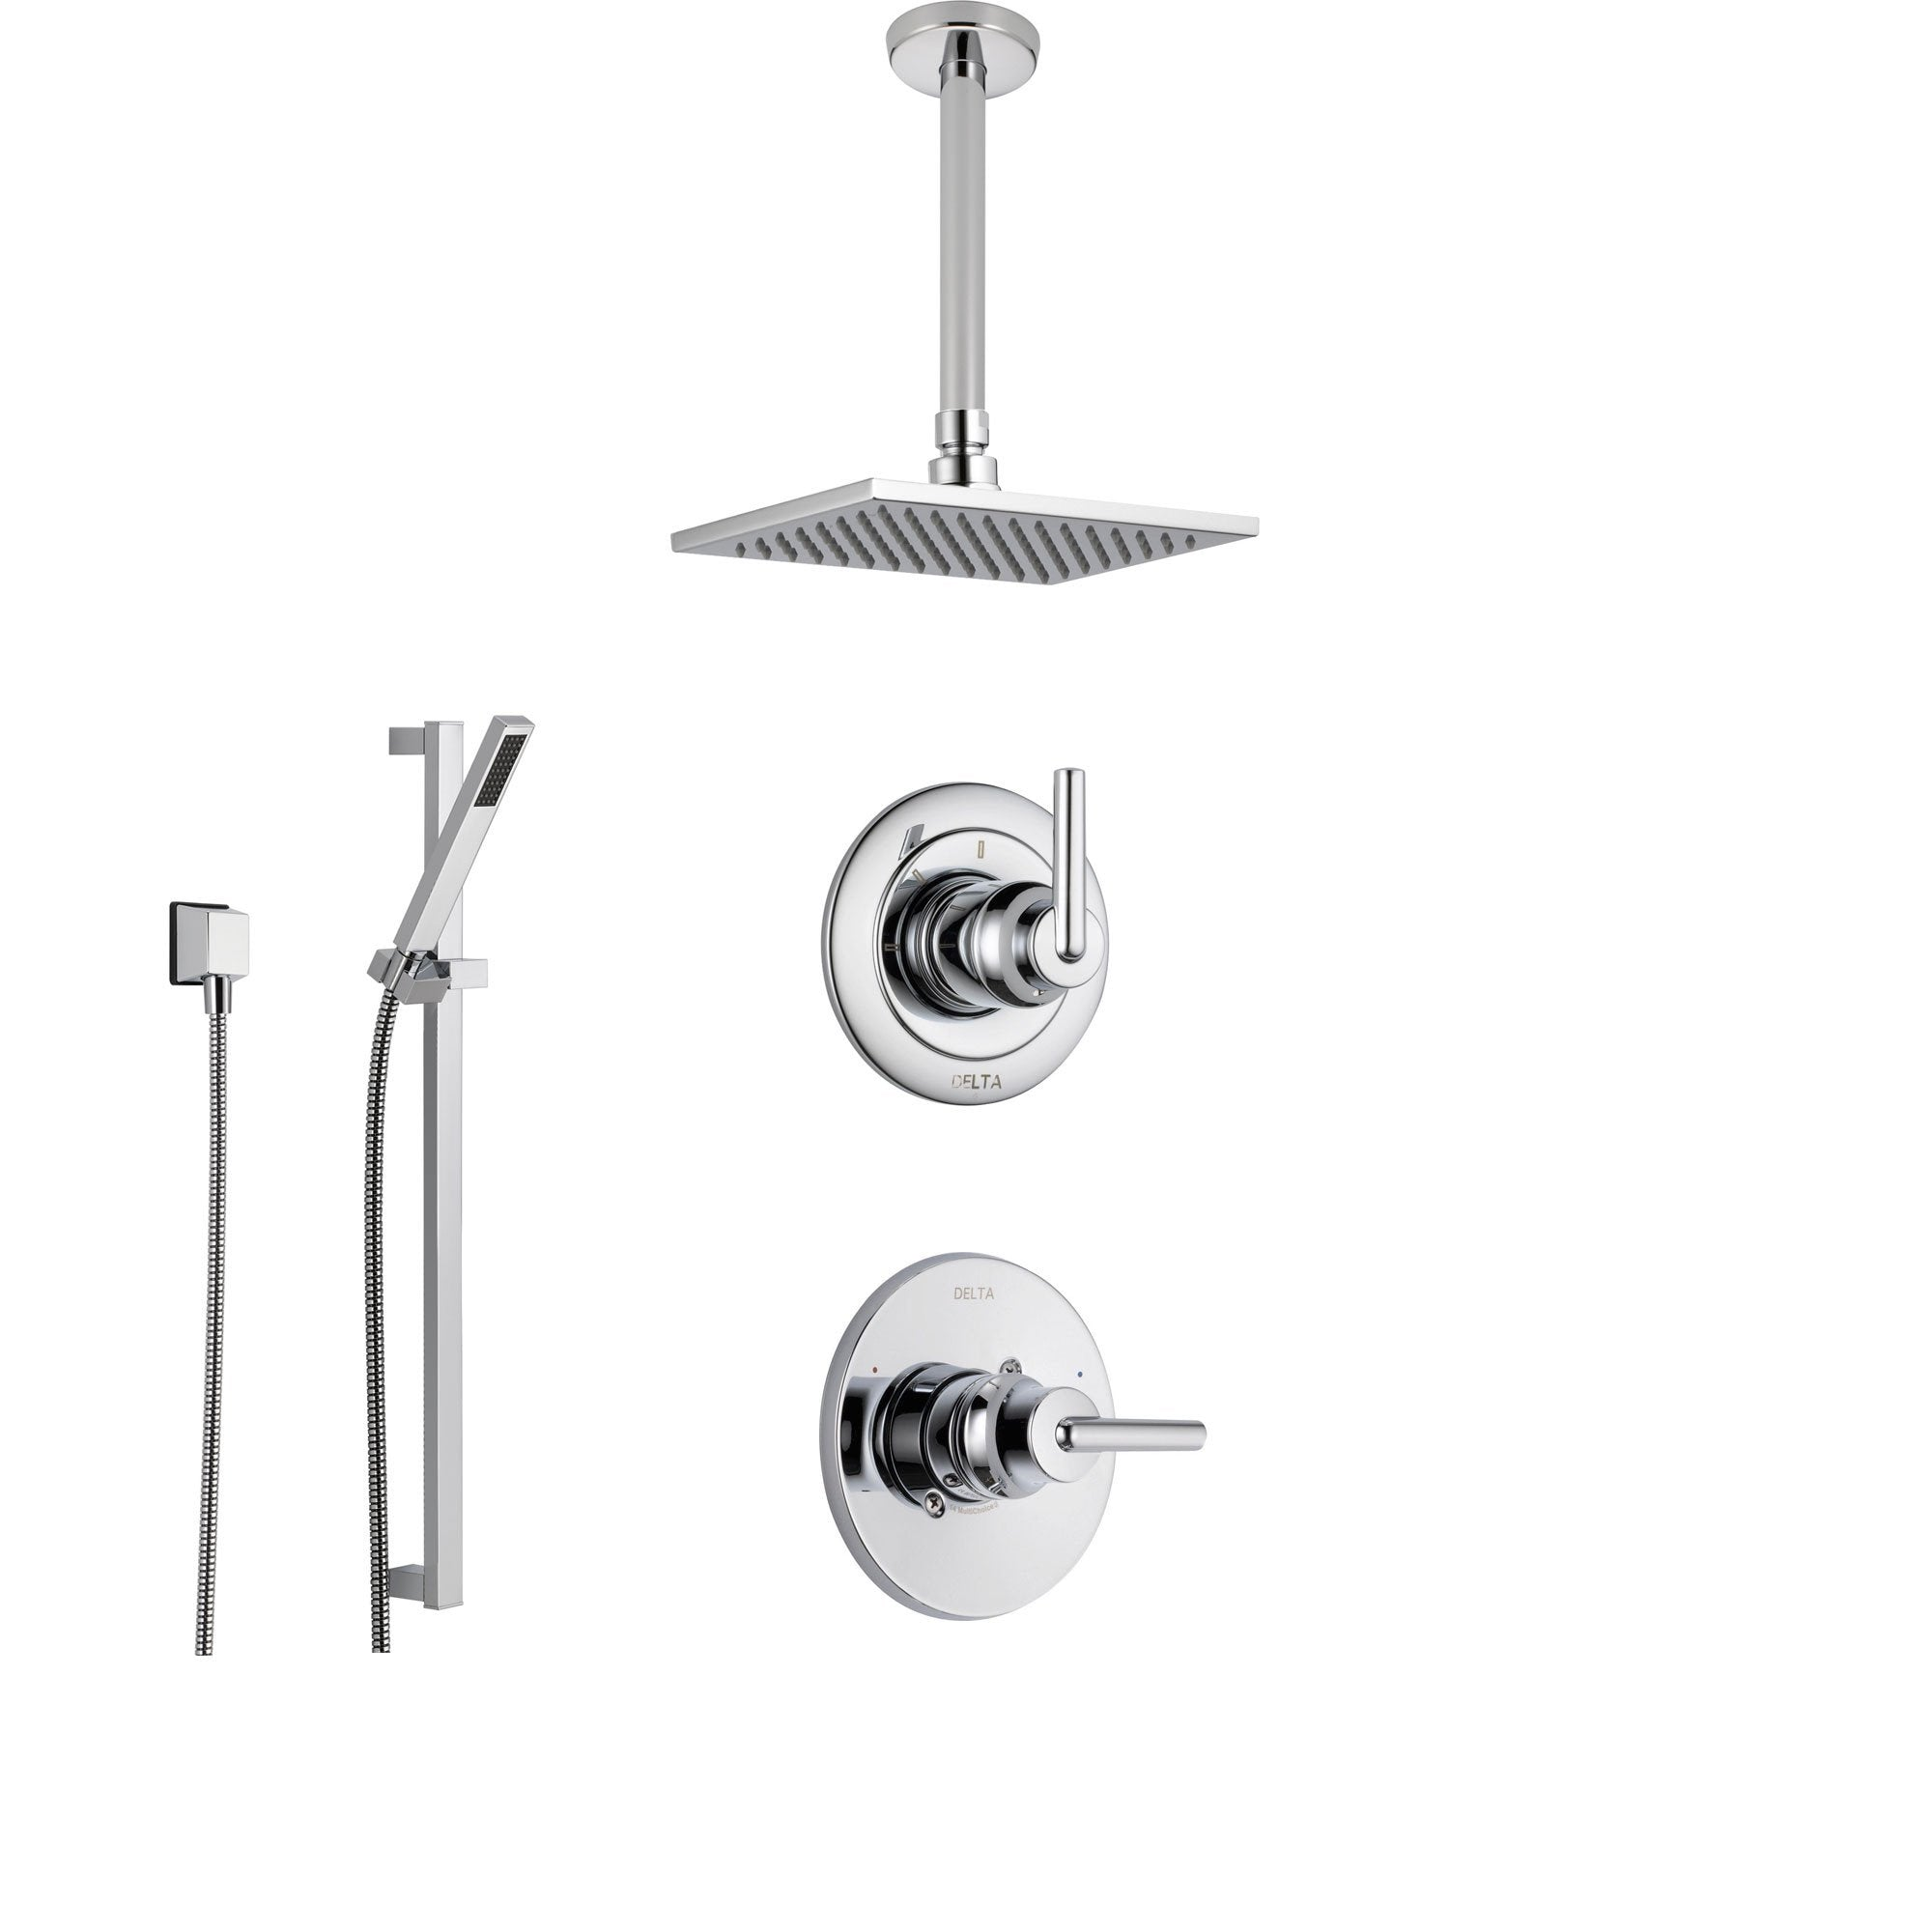 Delta Trinsic Chrome Shower System With Normal Shower Handle 3 Setting Diverter Ceiling Mount Large Rain Showerhead And Handheld Spray Ss145985